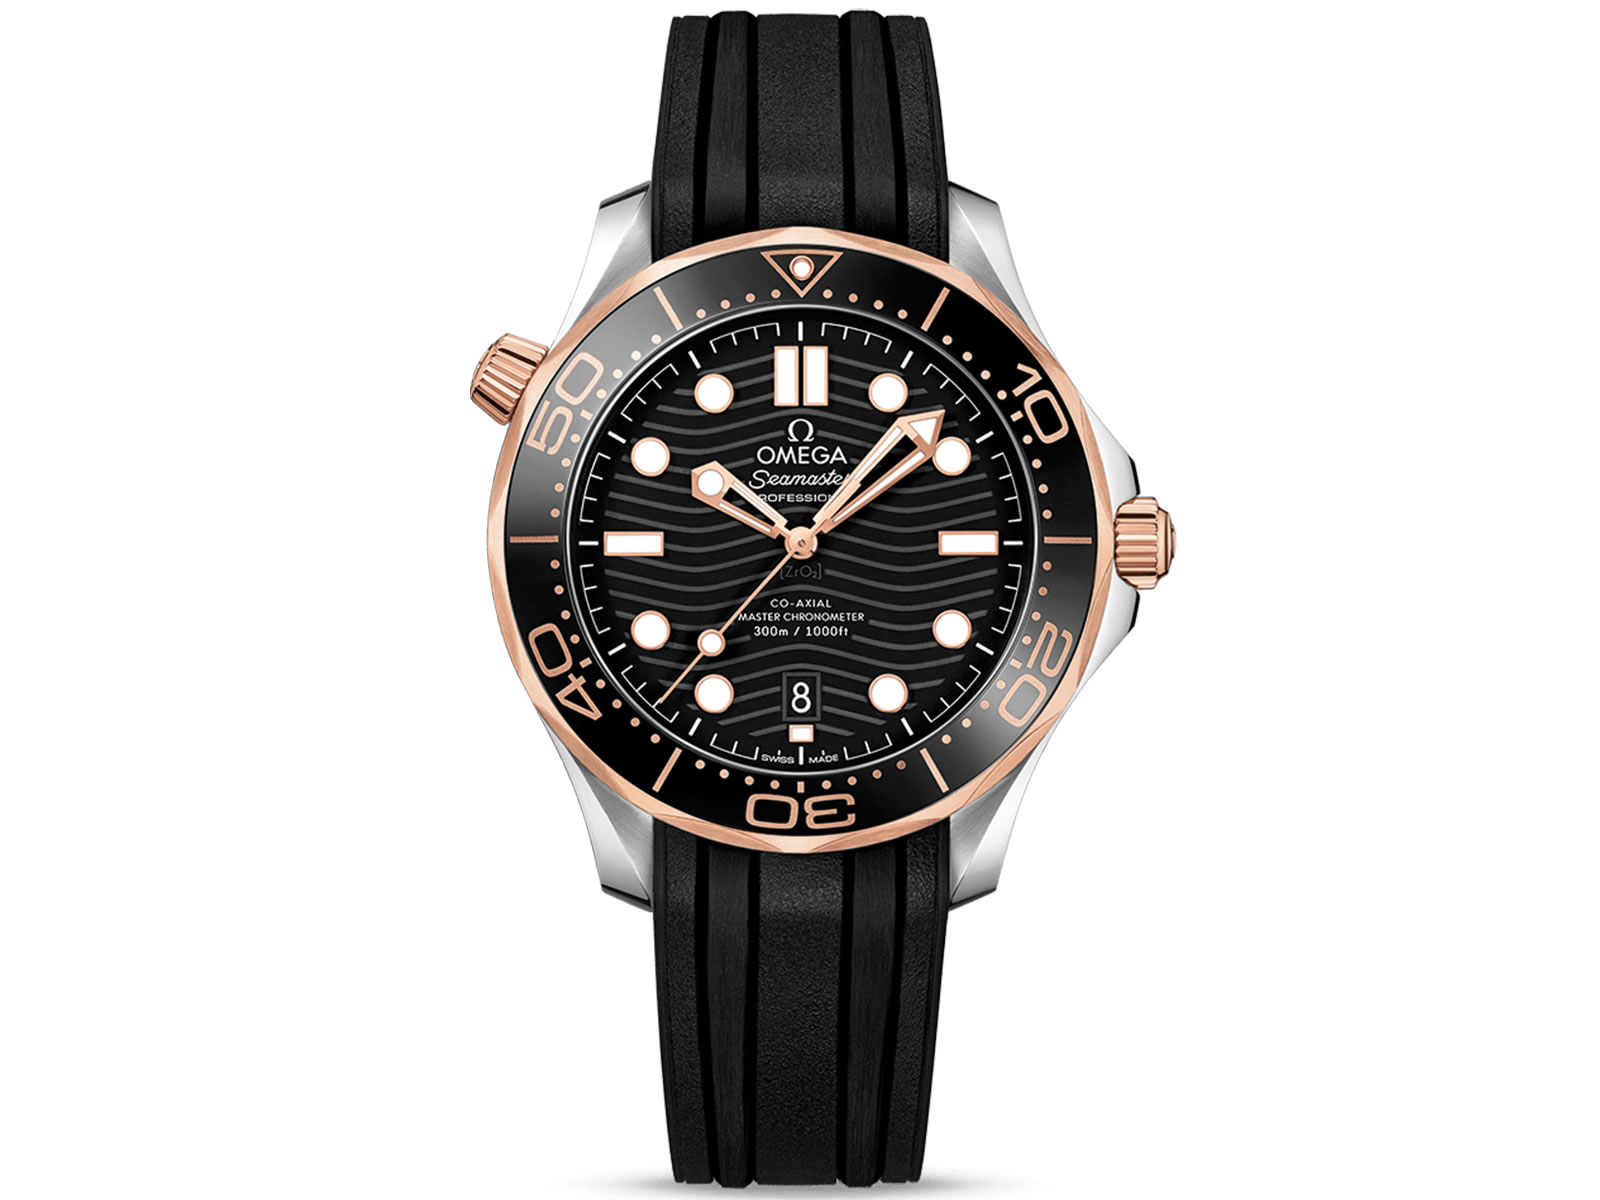 210-22-42-20-01-002-omega-seamaster-diver-300m-collection-1-.jpg